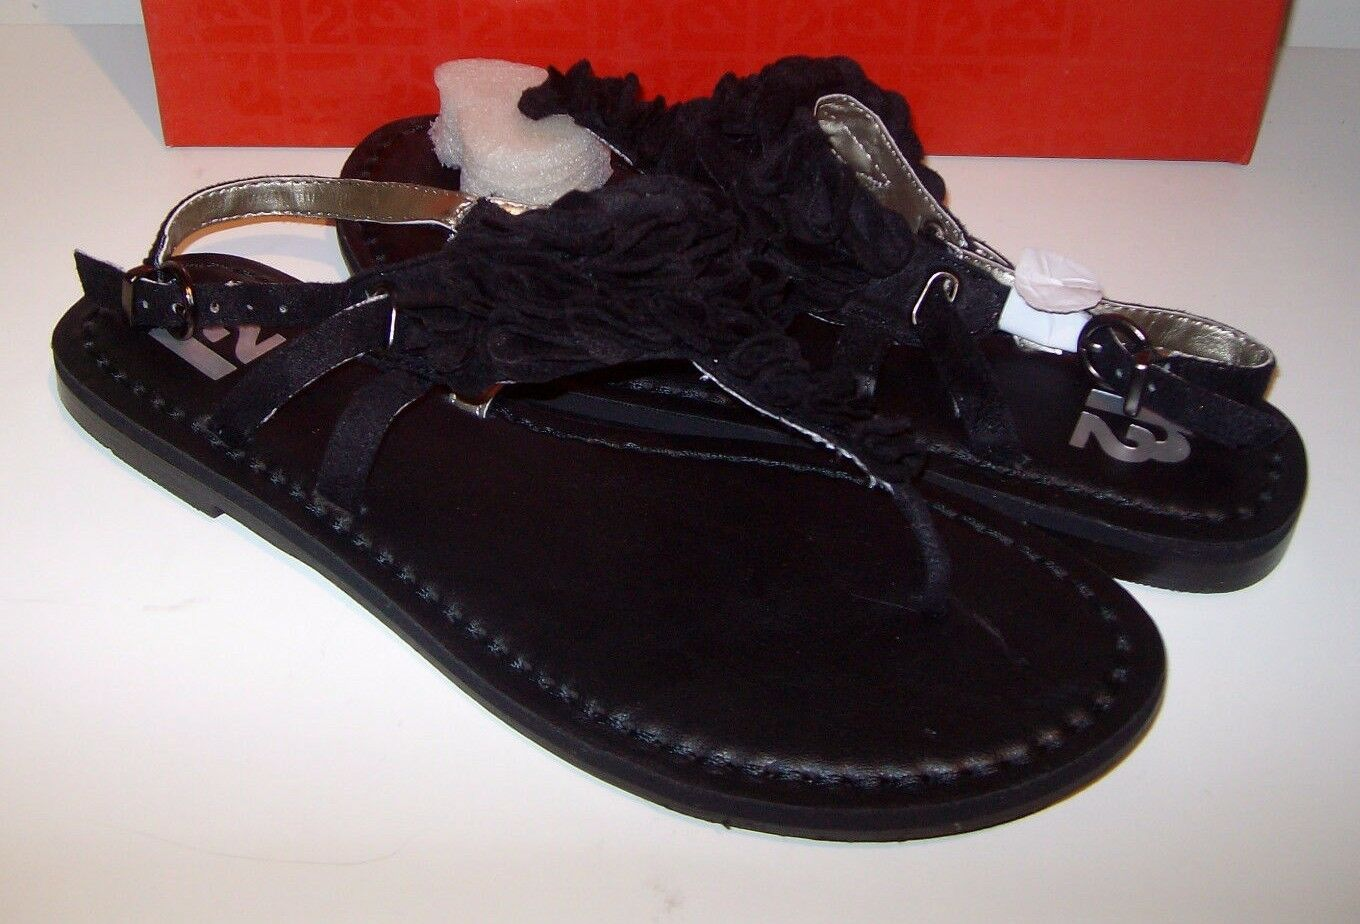 R2 FootWear Size 6 Black Shoes Sandals Thongs New Womens Shoes Black c6fd10